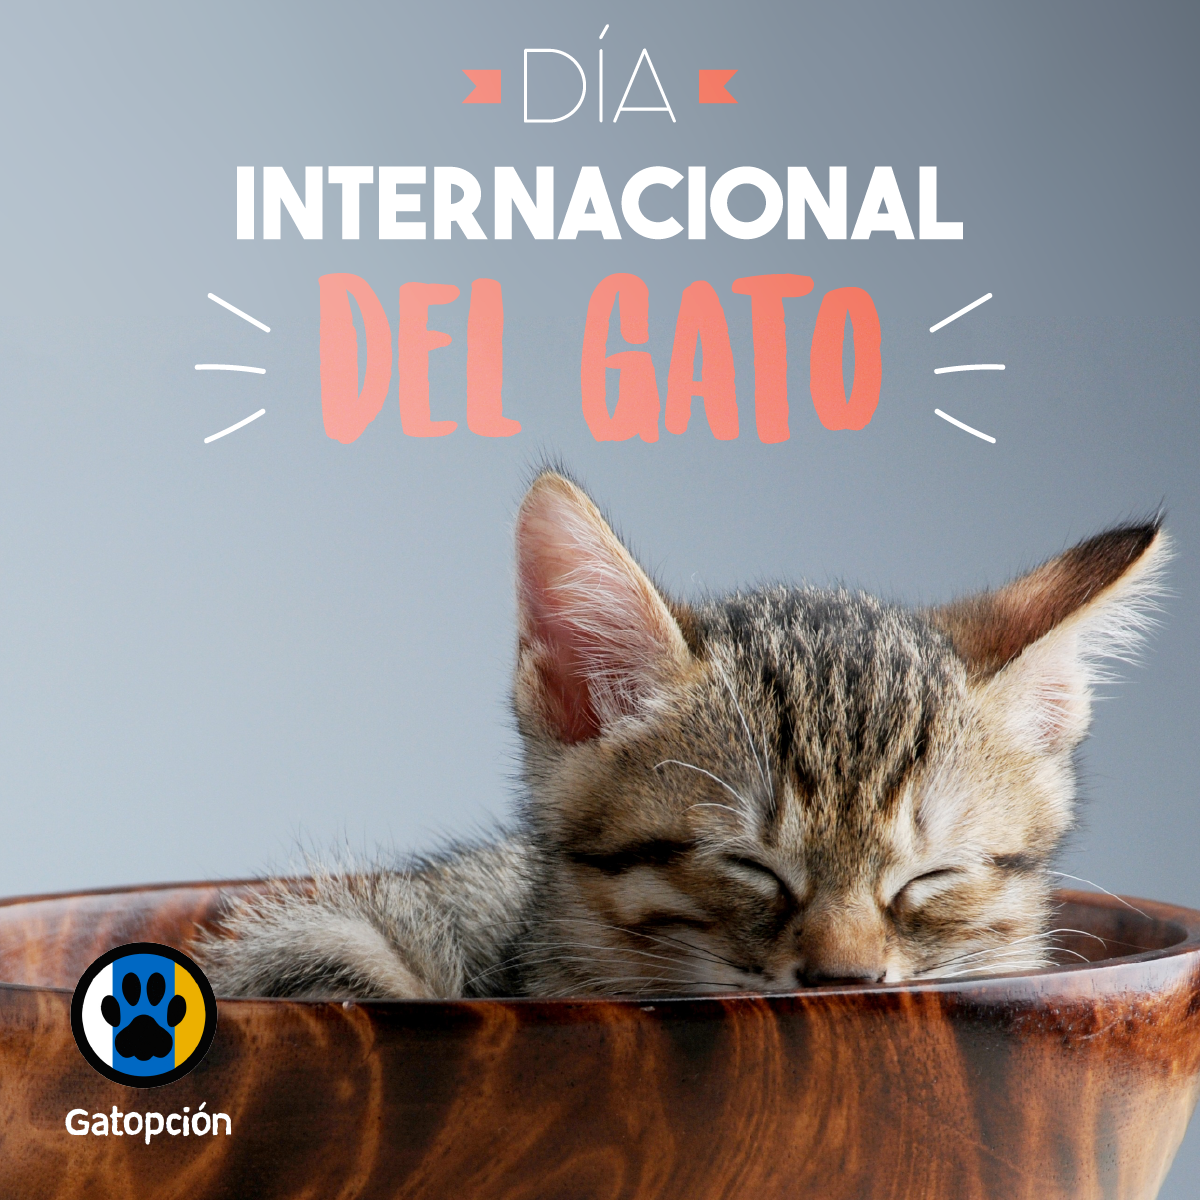 Imágenes Día del Gato Internacional World Cat Day Socks Bill Clinton juntos